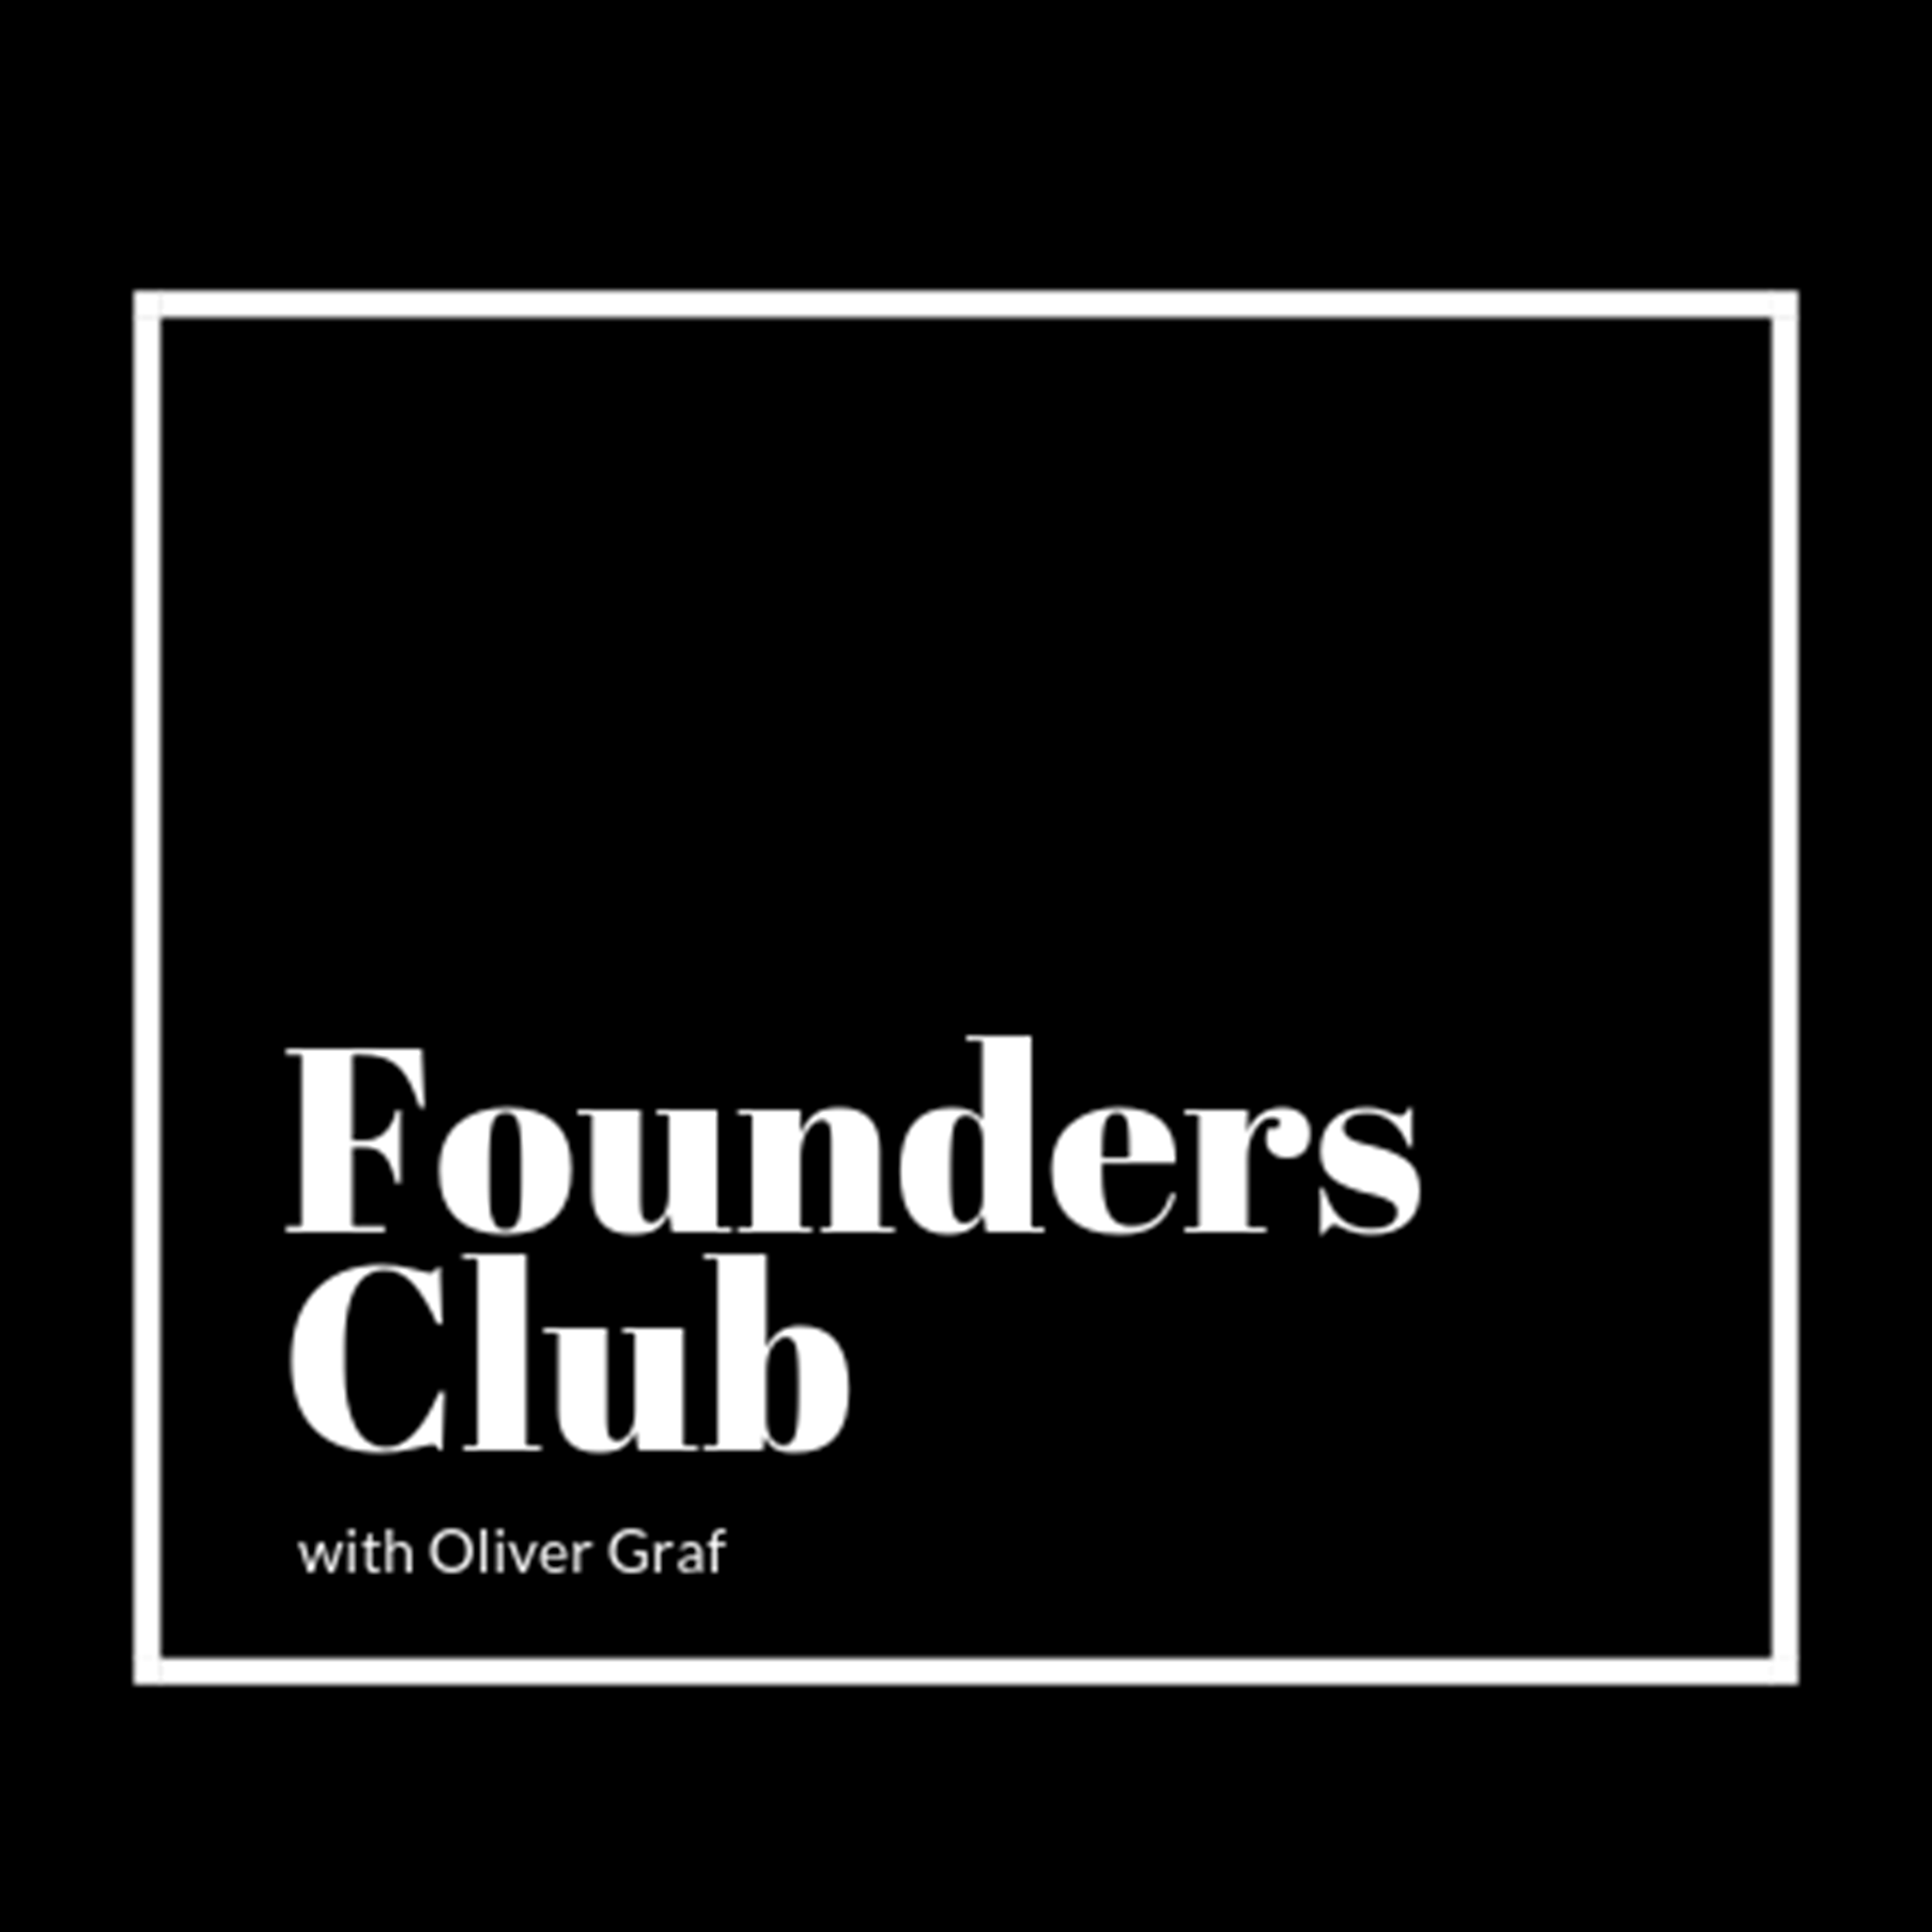 Founders Club - For Real Estate Entrepreneurs